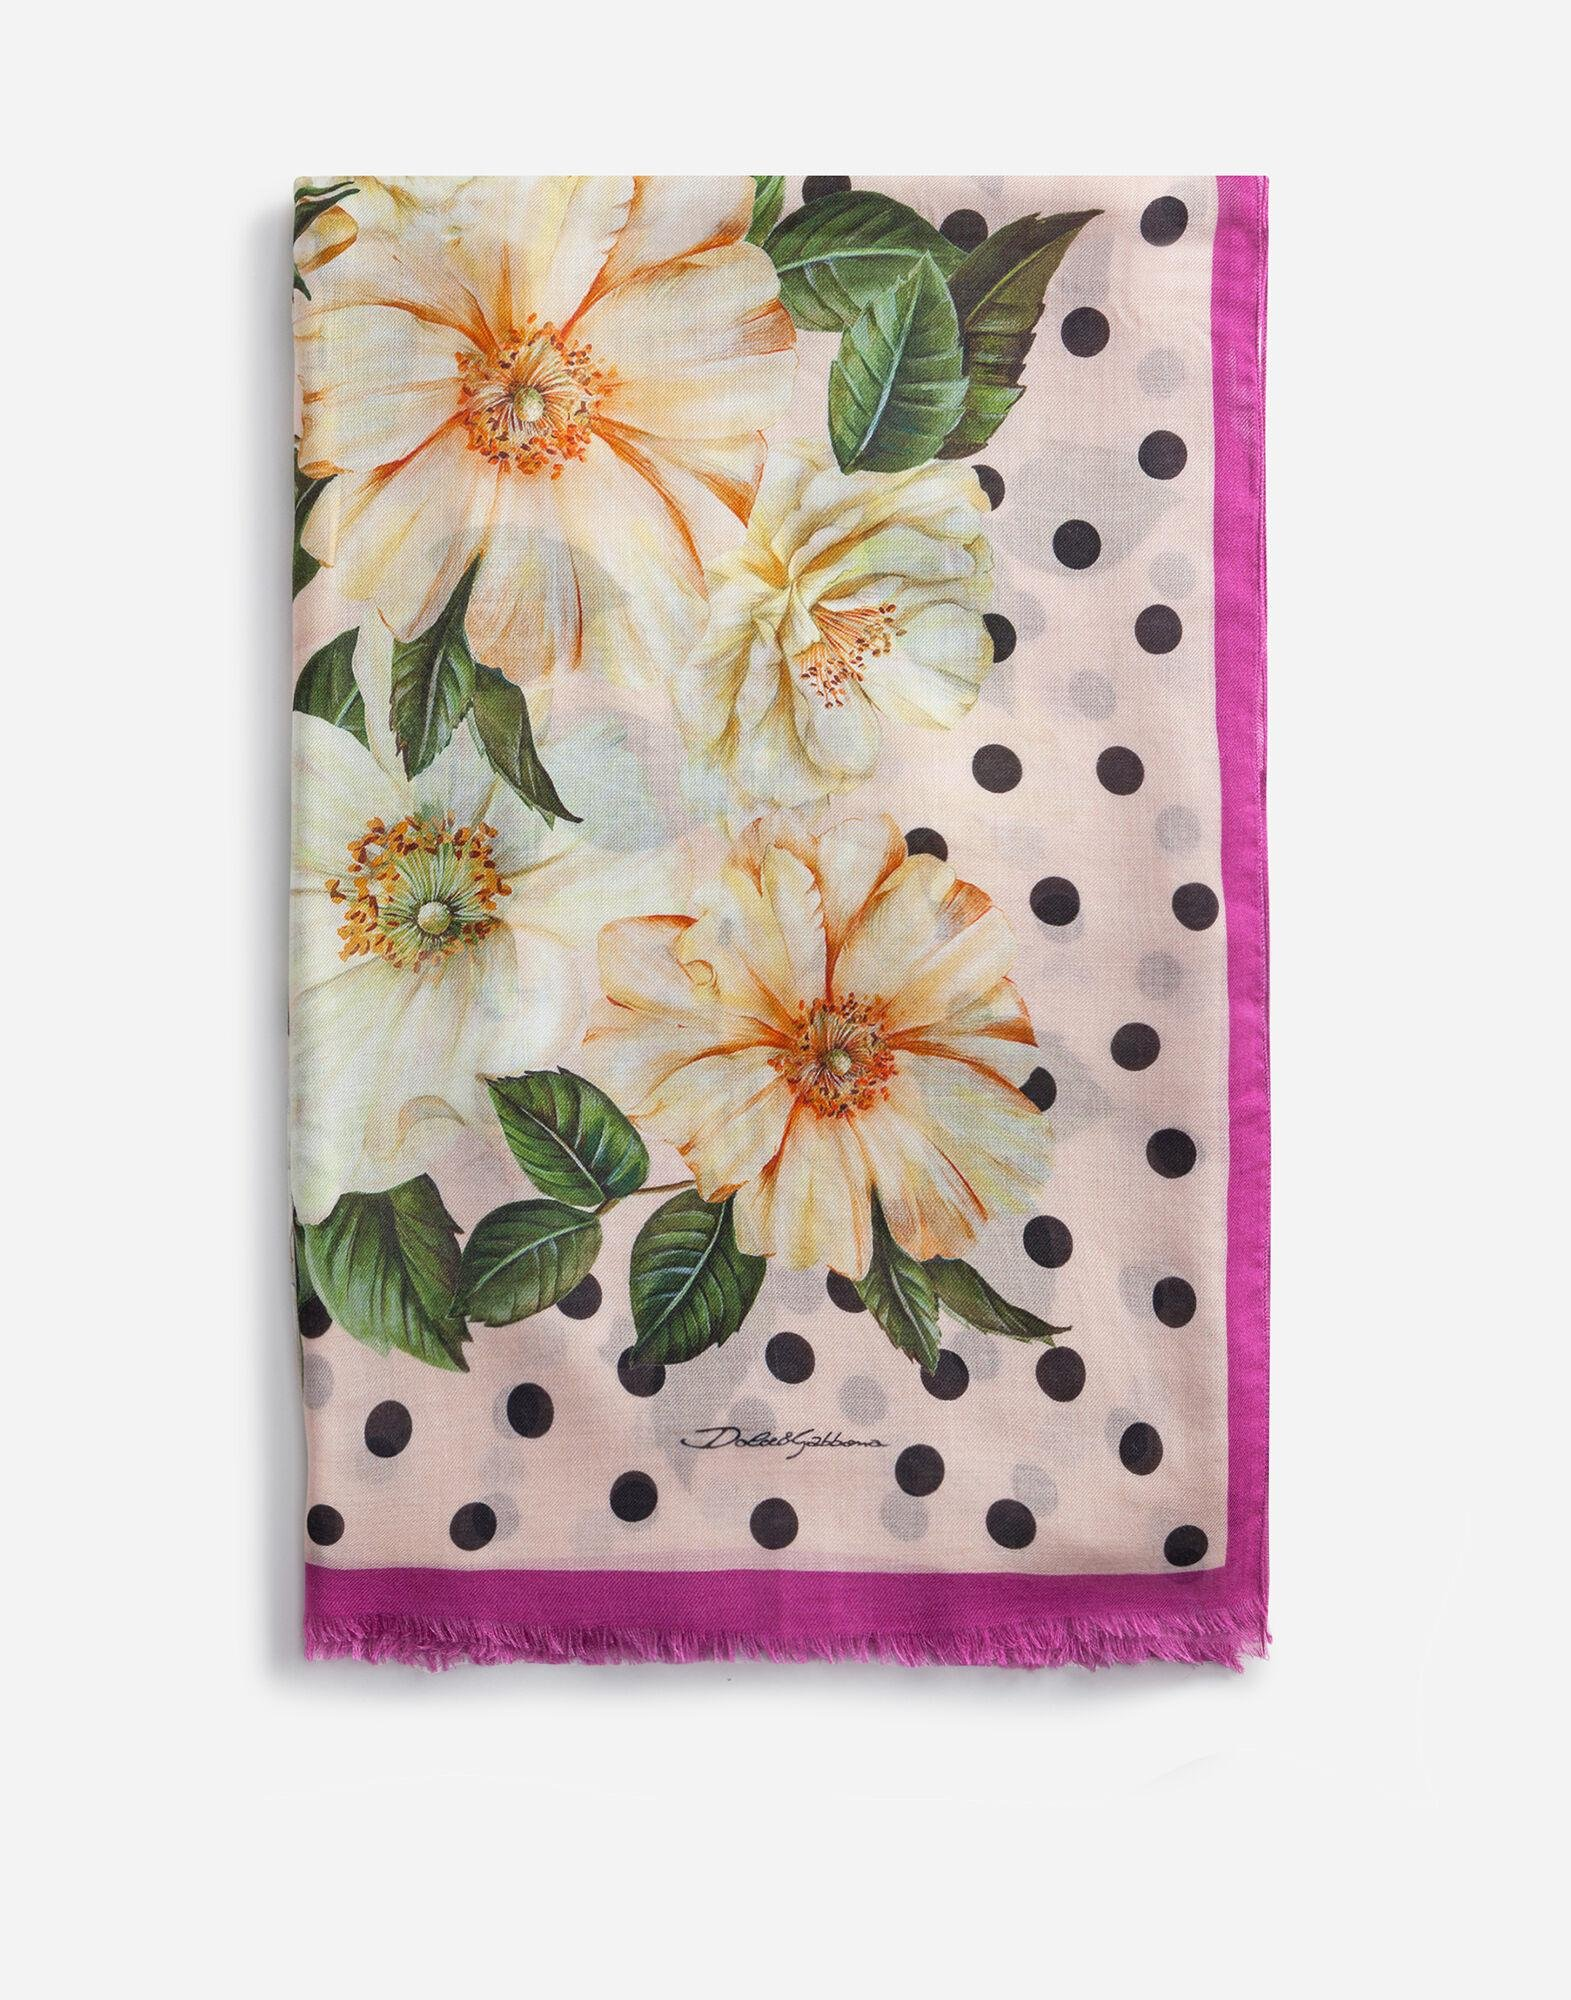 Camellia-print cashmere and modal scarf (135 x 200)